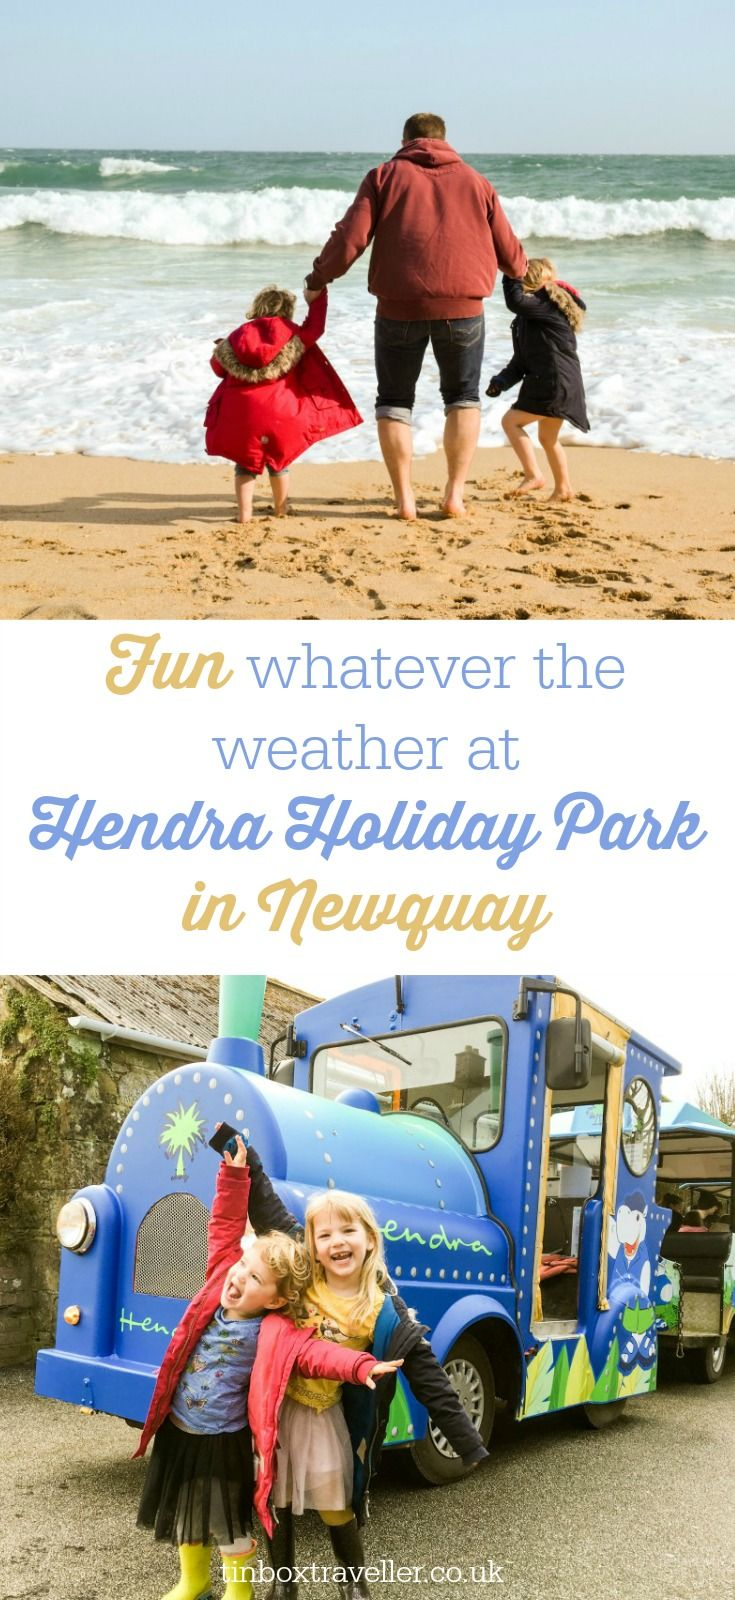 Hendra Holiday Park in Newquay has plenty of family-friendly activities to enjoy whatever the weather. We can highly recommend this Cornwall holiday park to families looking for holiday homes or camping in Cornwall #hosted #Cornwall #familyholiday #holidaypark #travelinspiration #travelwithkids #uktravel #Newquay